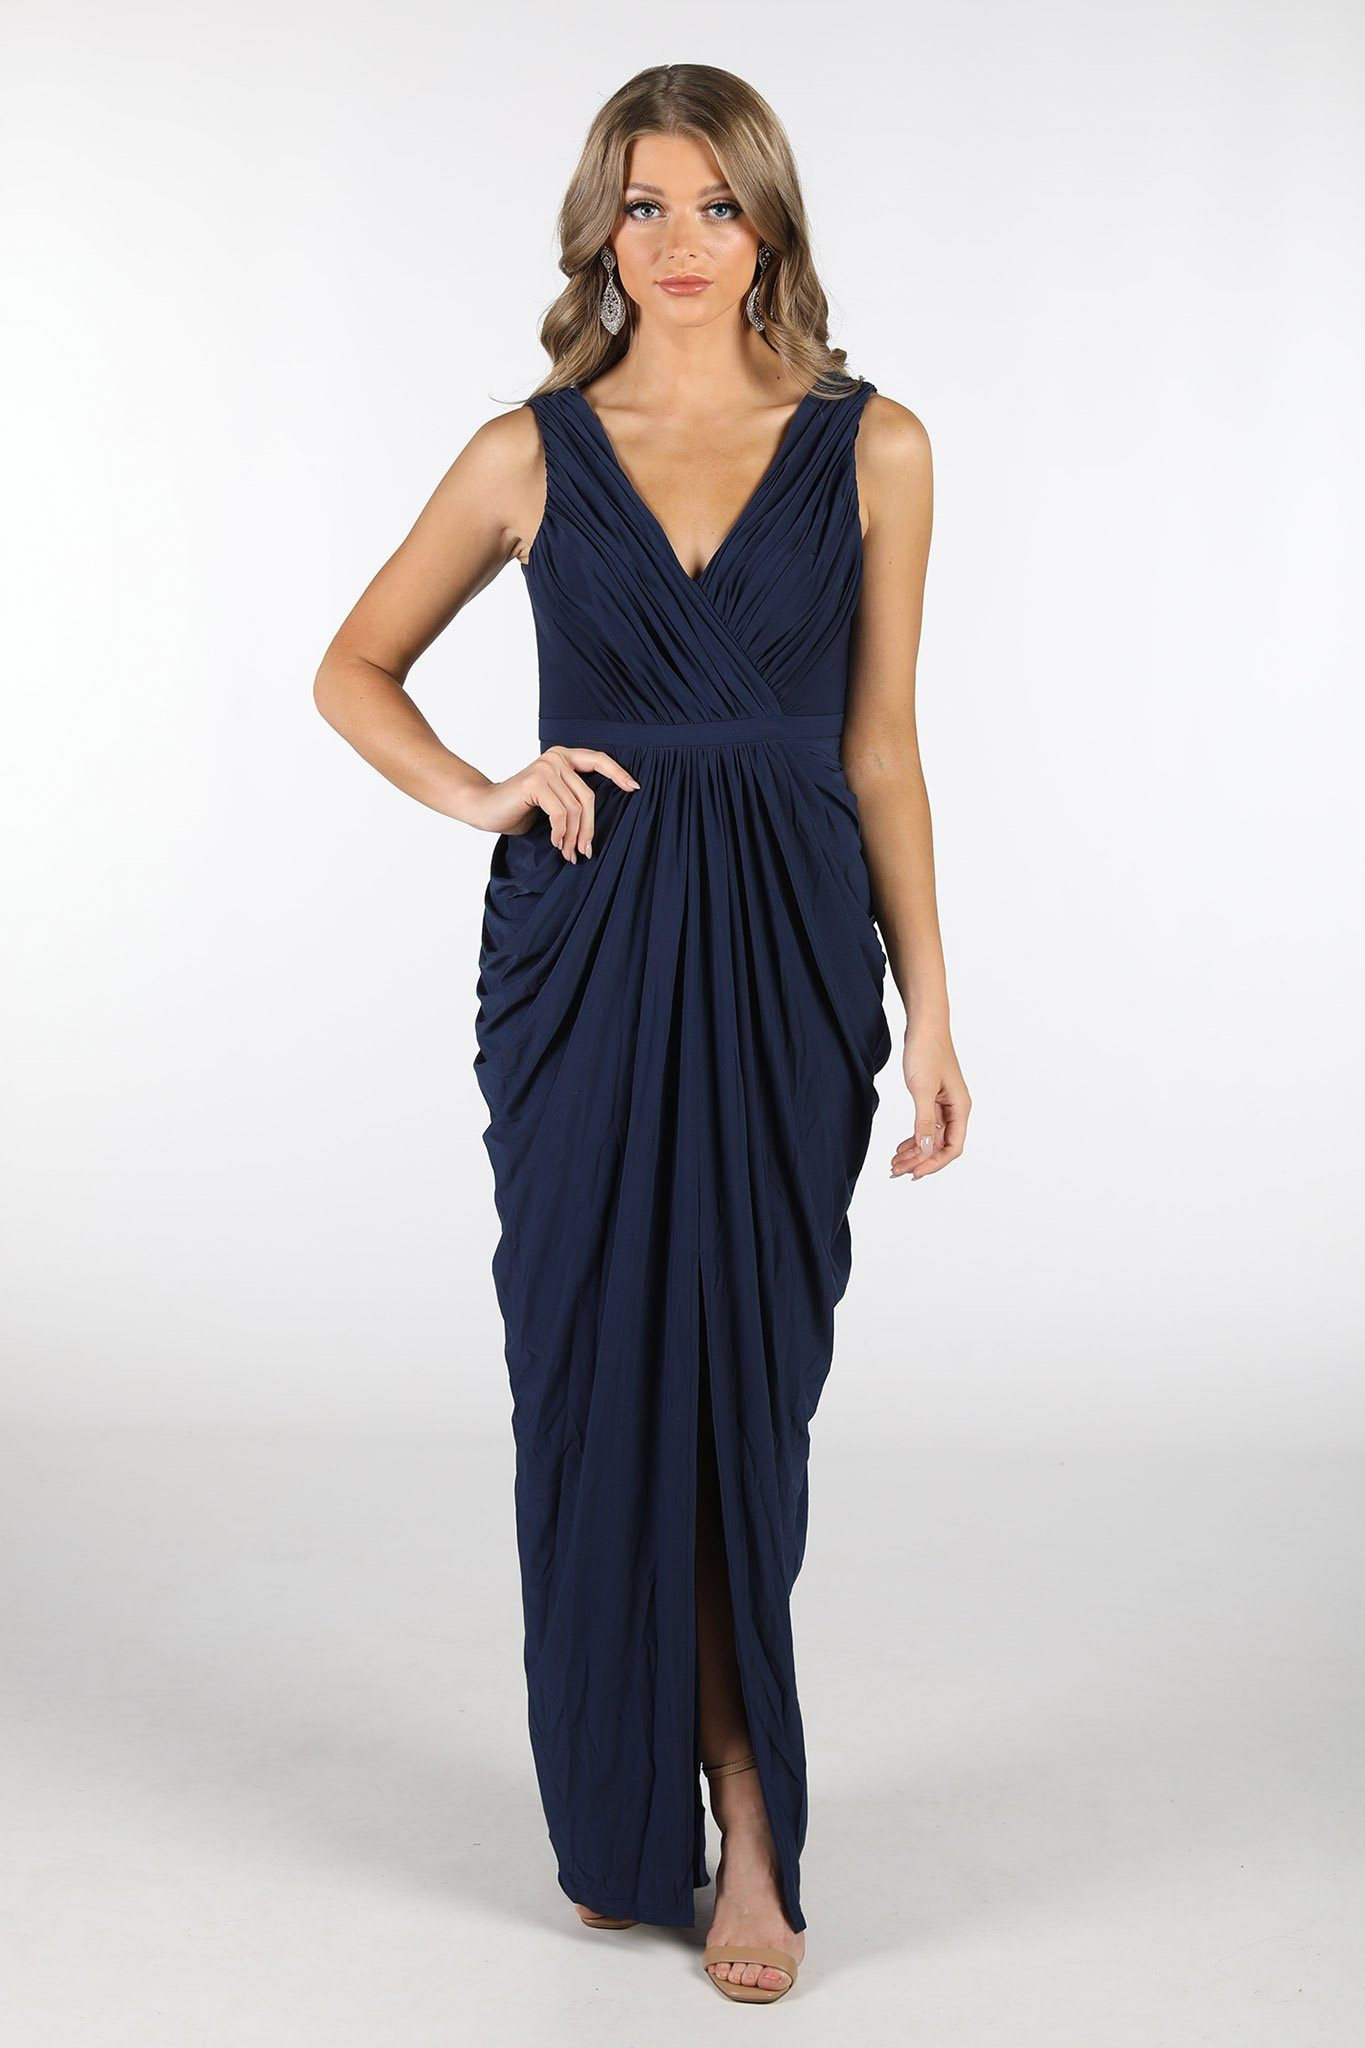 Navy Deep Blue Maxi Dress featuring crossover V neckline, tiered slim skirt with front split